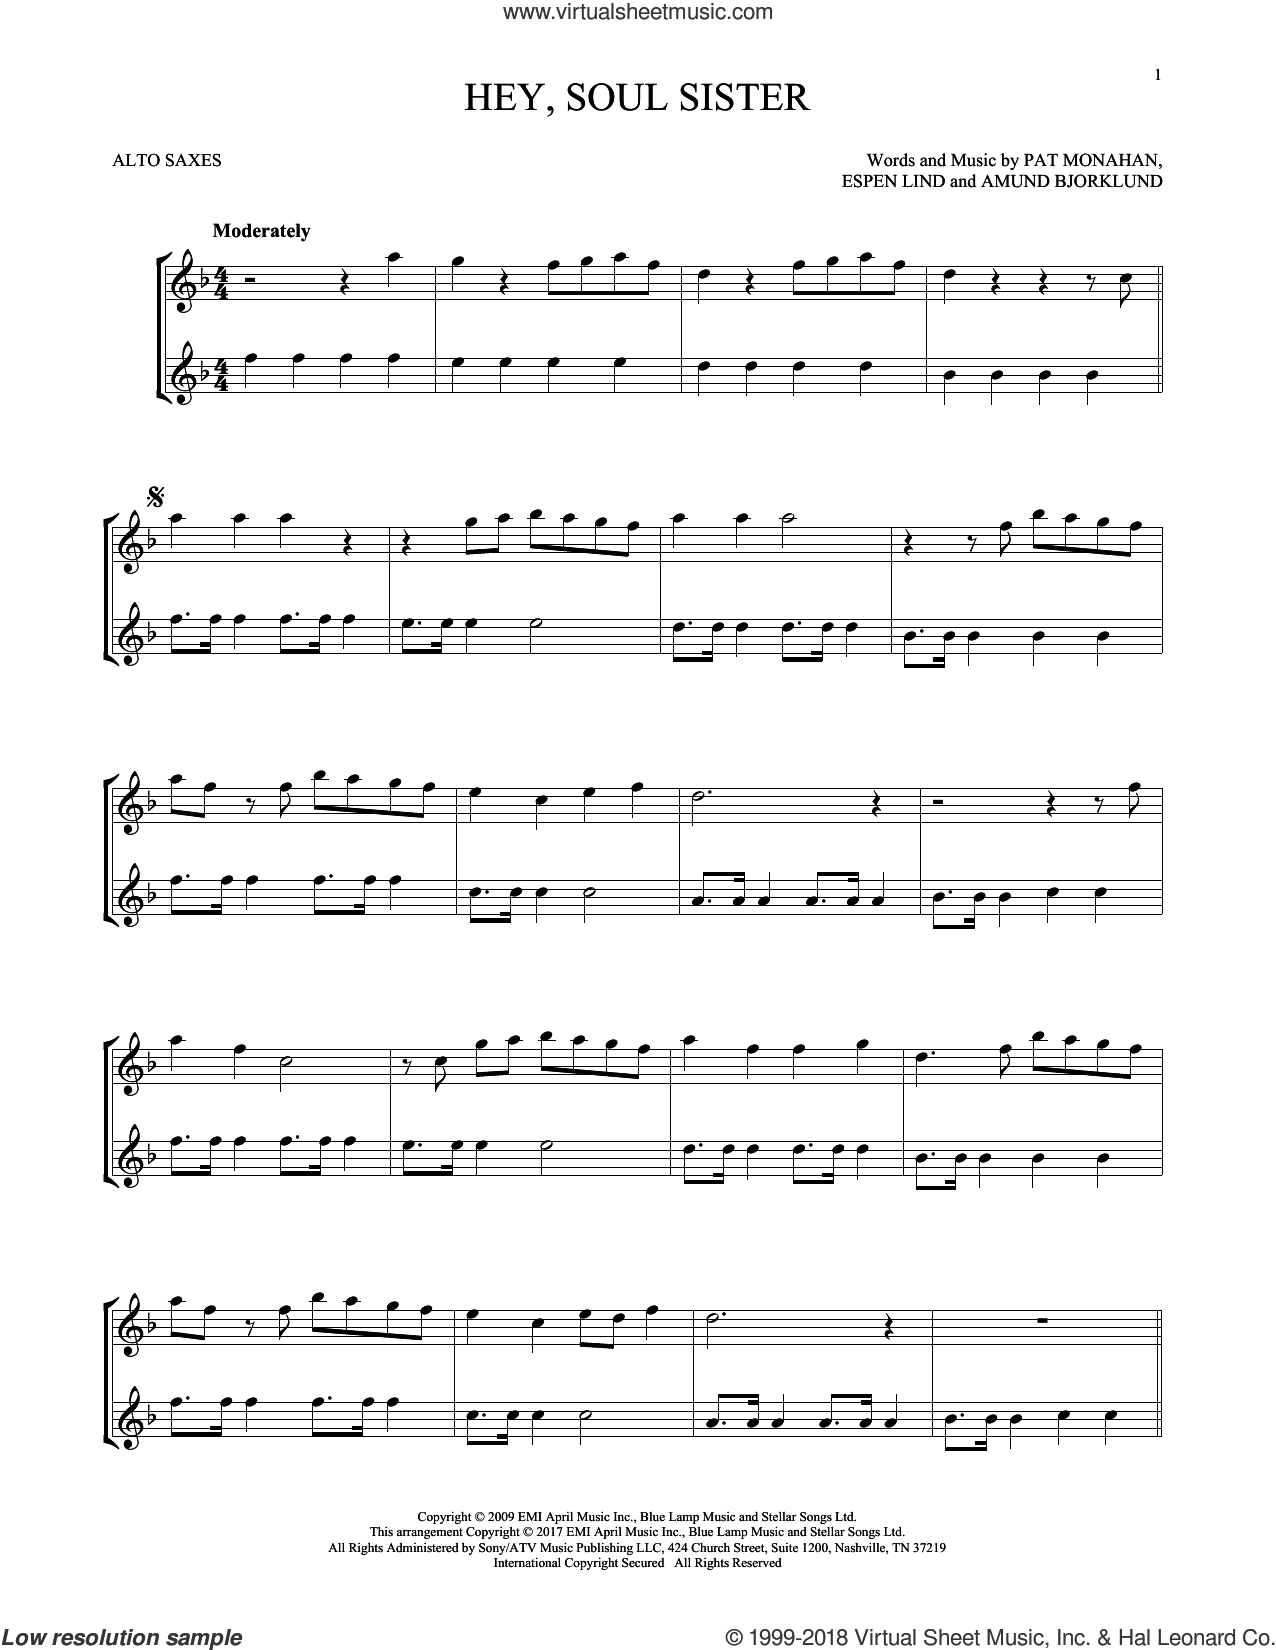 Hey, Soul Sister sheet music for two alto saxophones (duets) by Train, Amund Bjorklund, Espen Lind and Pat Monahan, intermediate skill level